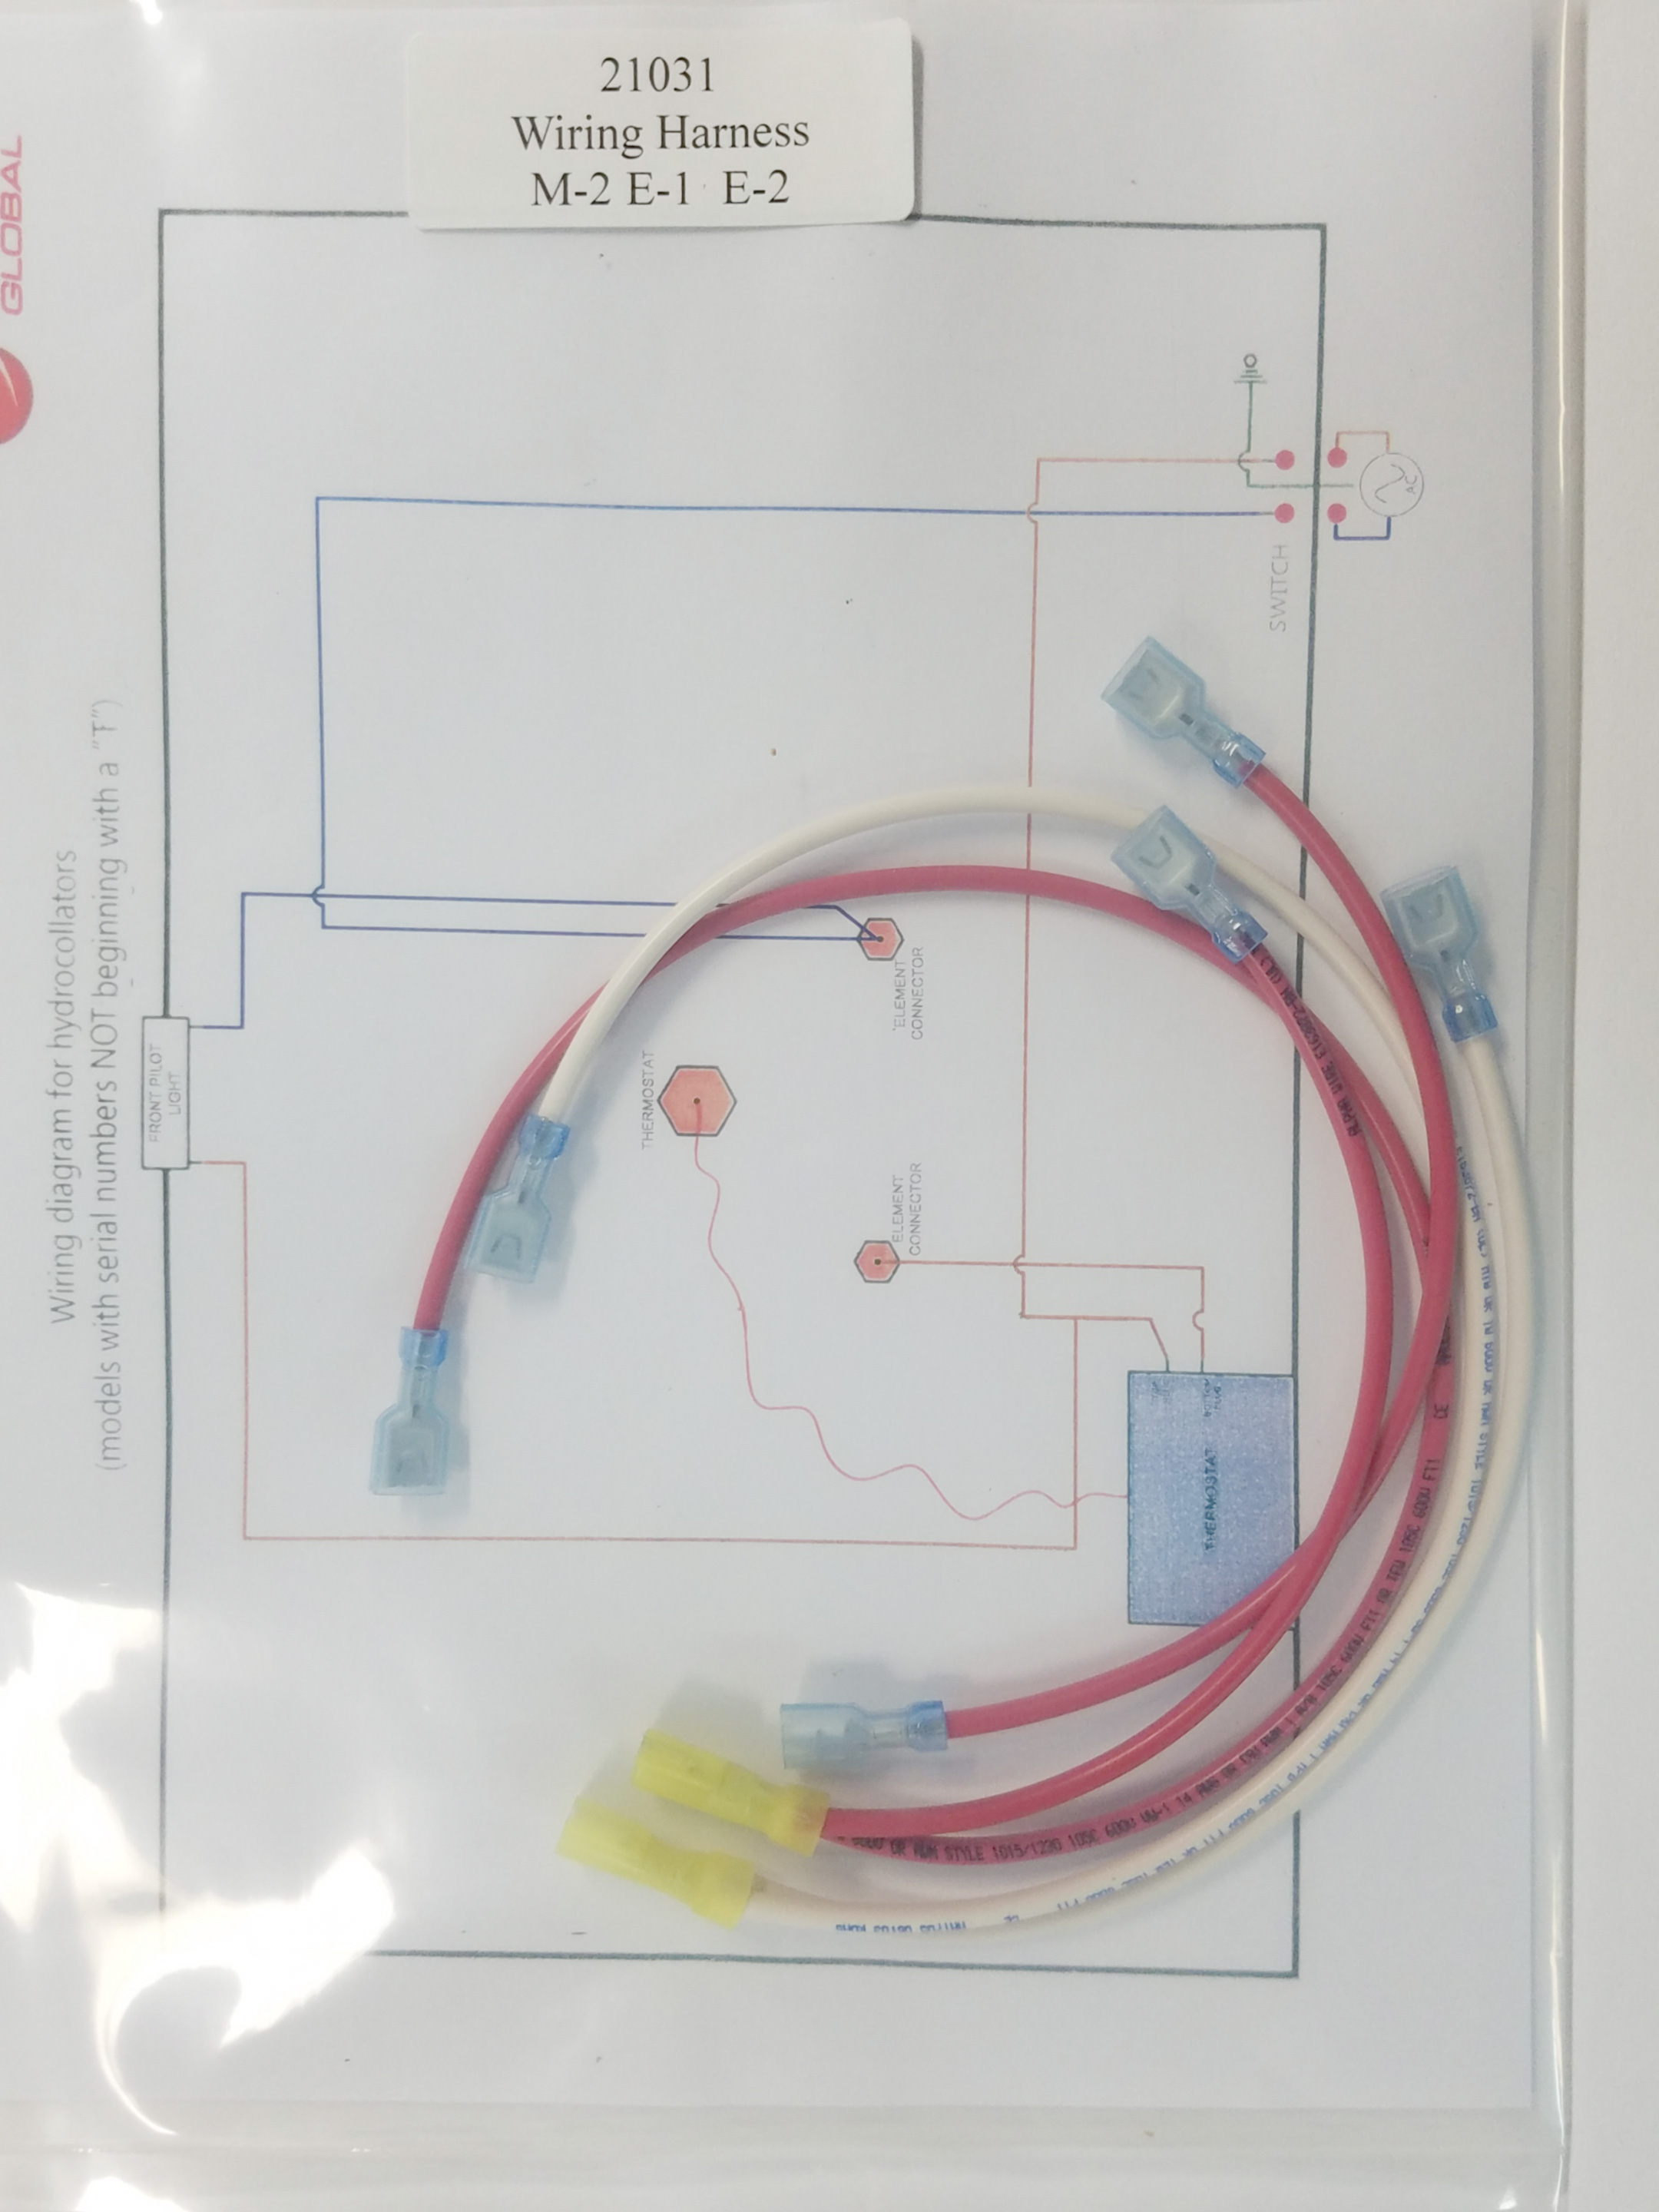 wiring harness for E-1, E-2 (old M2) 21034 | Hydrocollator Wiring Diagram |  | ERS Biomedical